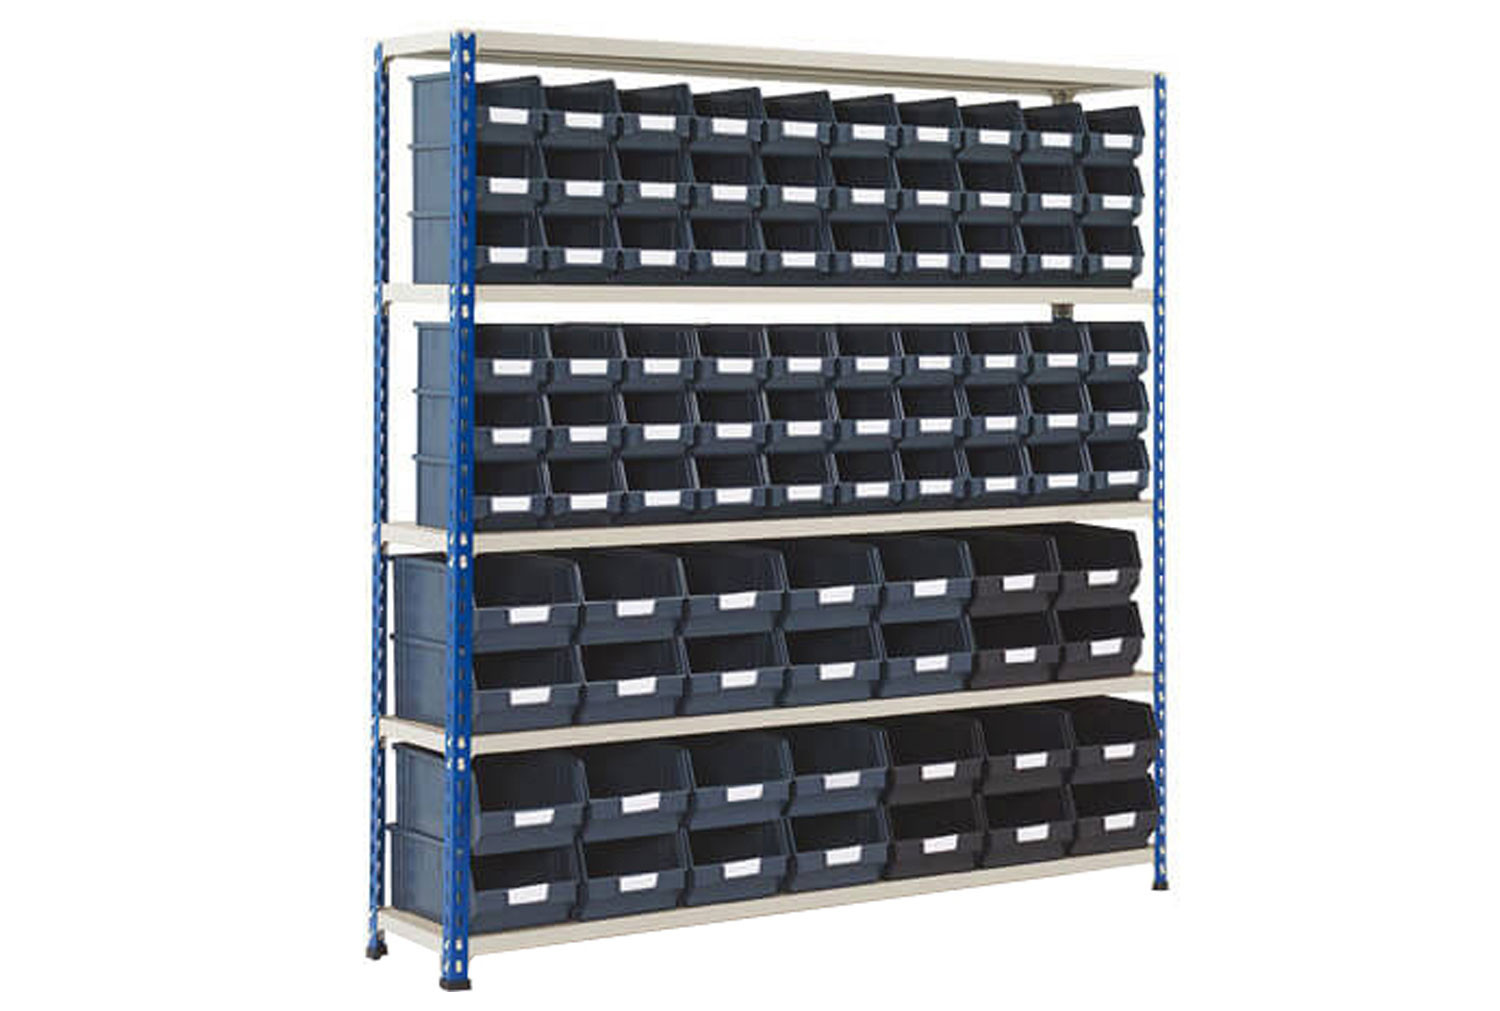 Rapid 2 shelving bay with 88 picking bins